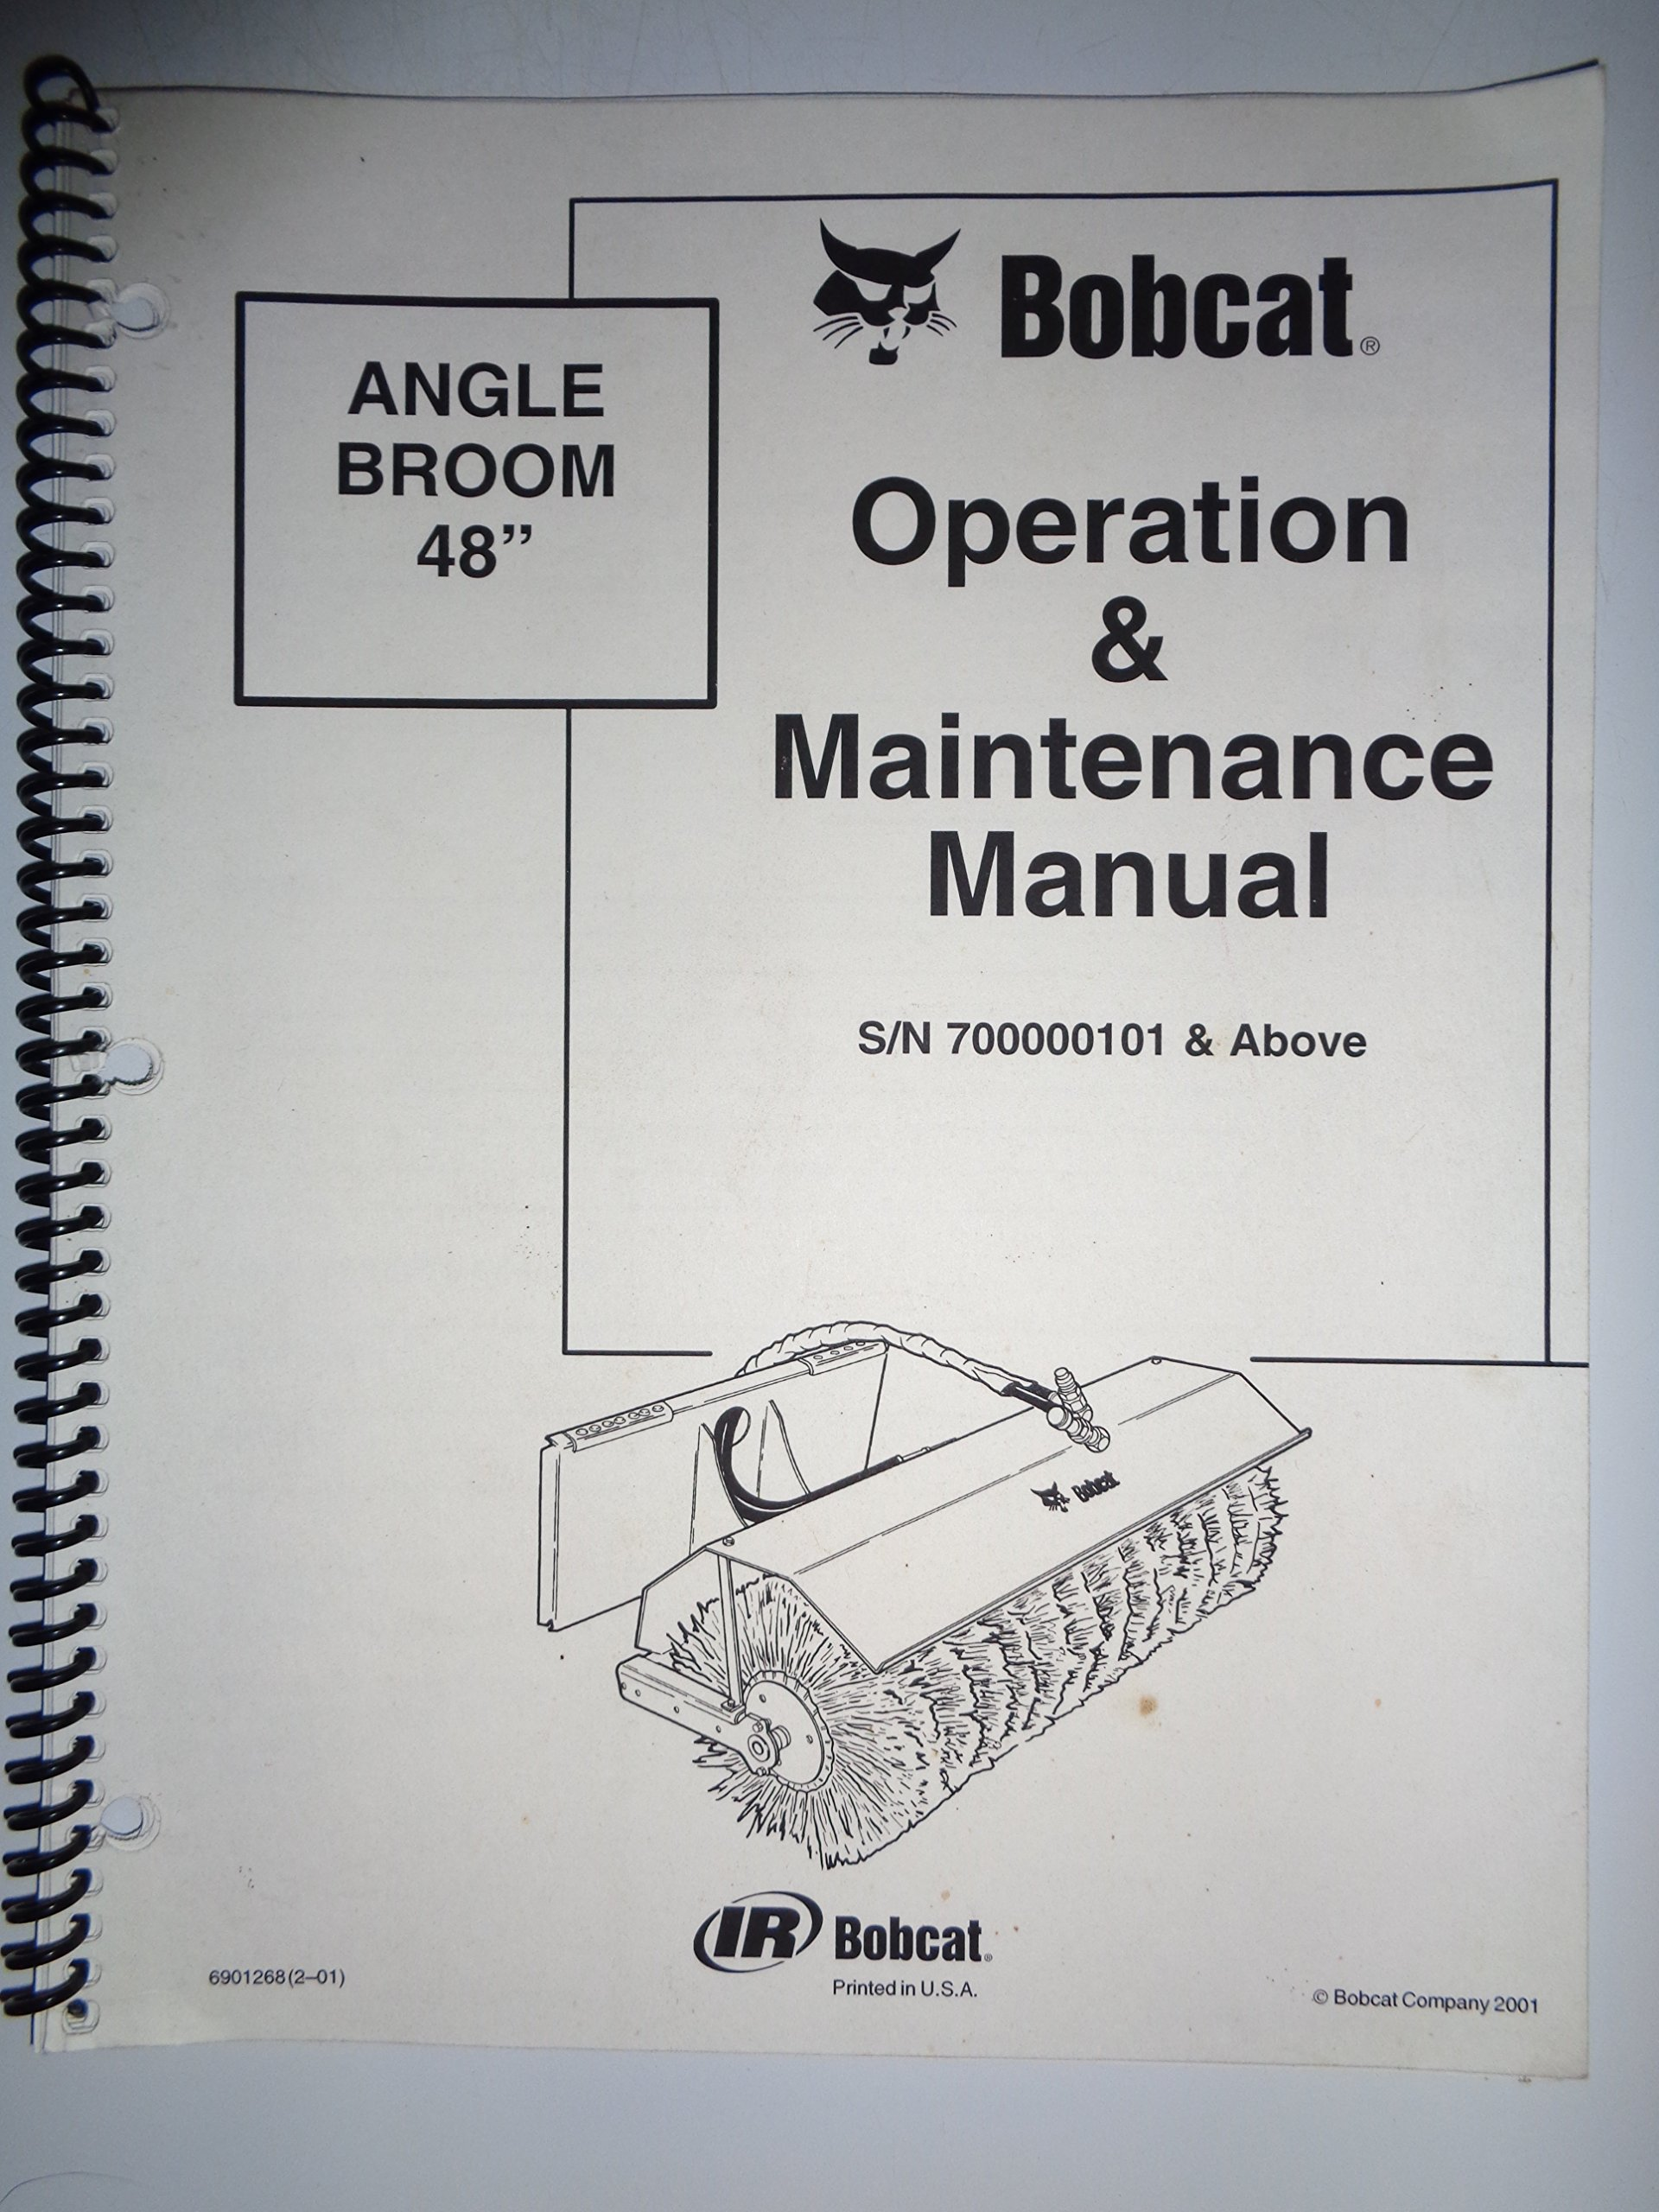 Bobcat Broom Parts Diagram Pdf Electrical Wiring Diagrams 2001 Angle 68 Sweeper